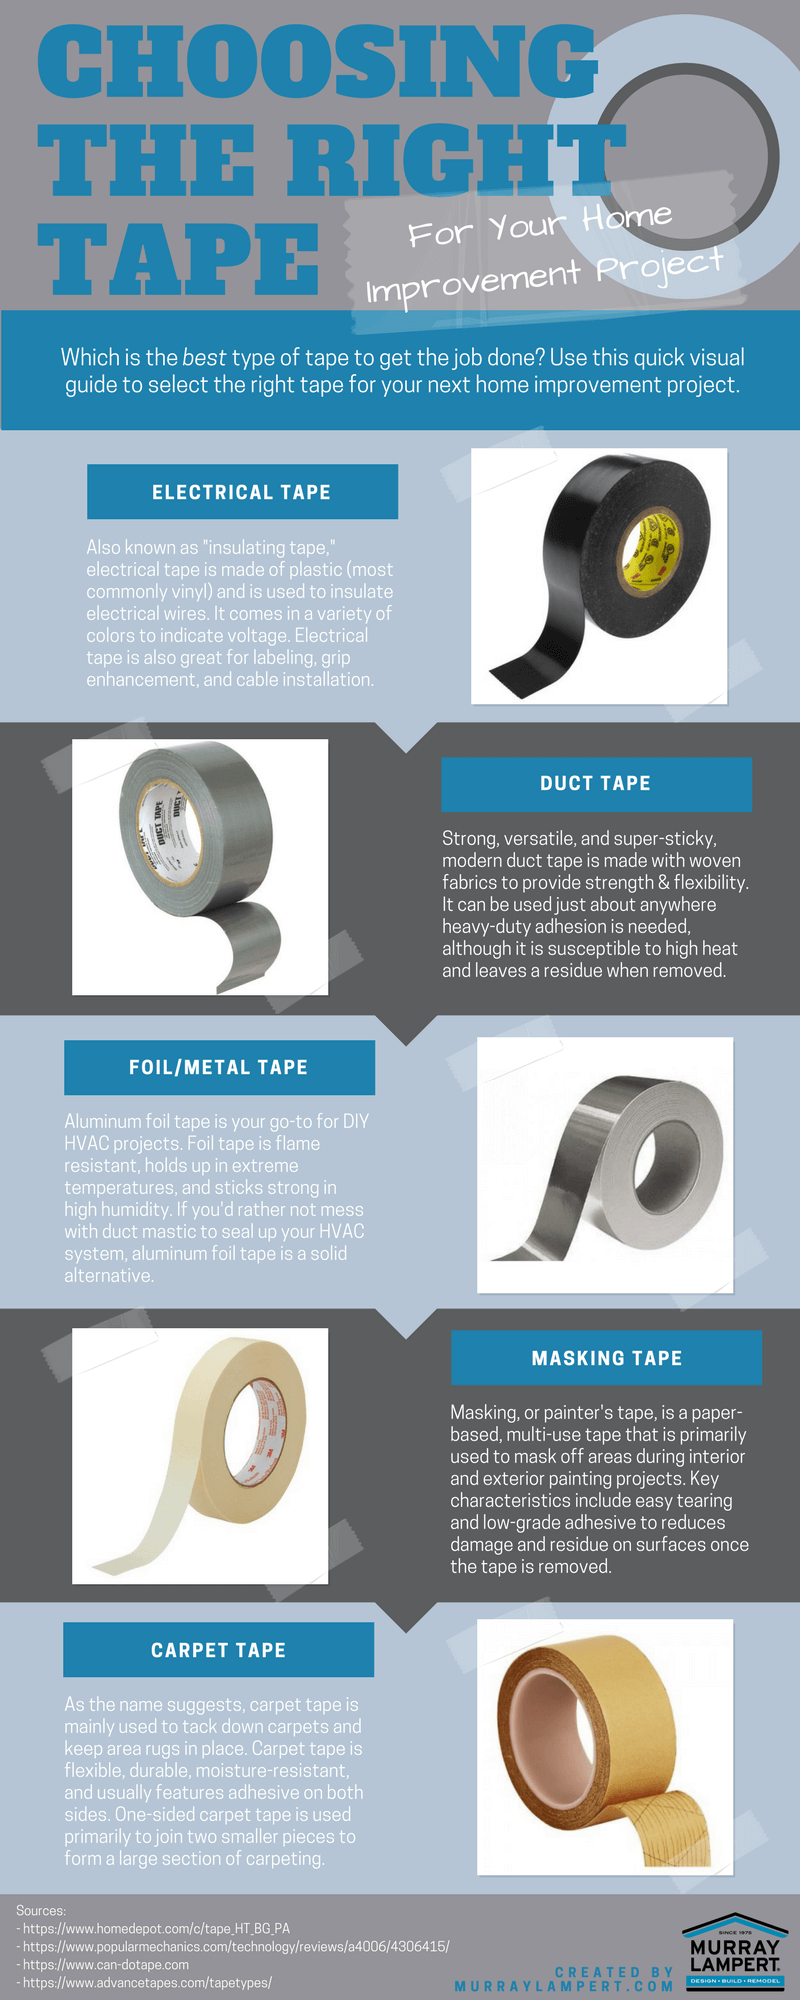 Choosing the Right Type of Tape Infographic